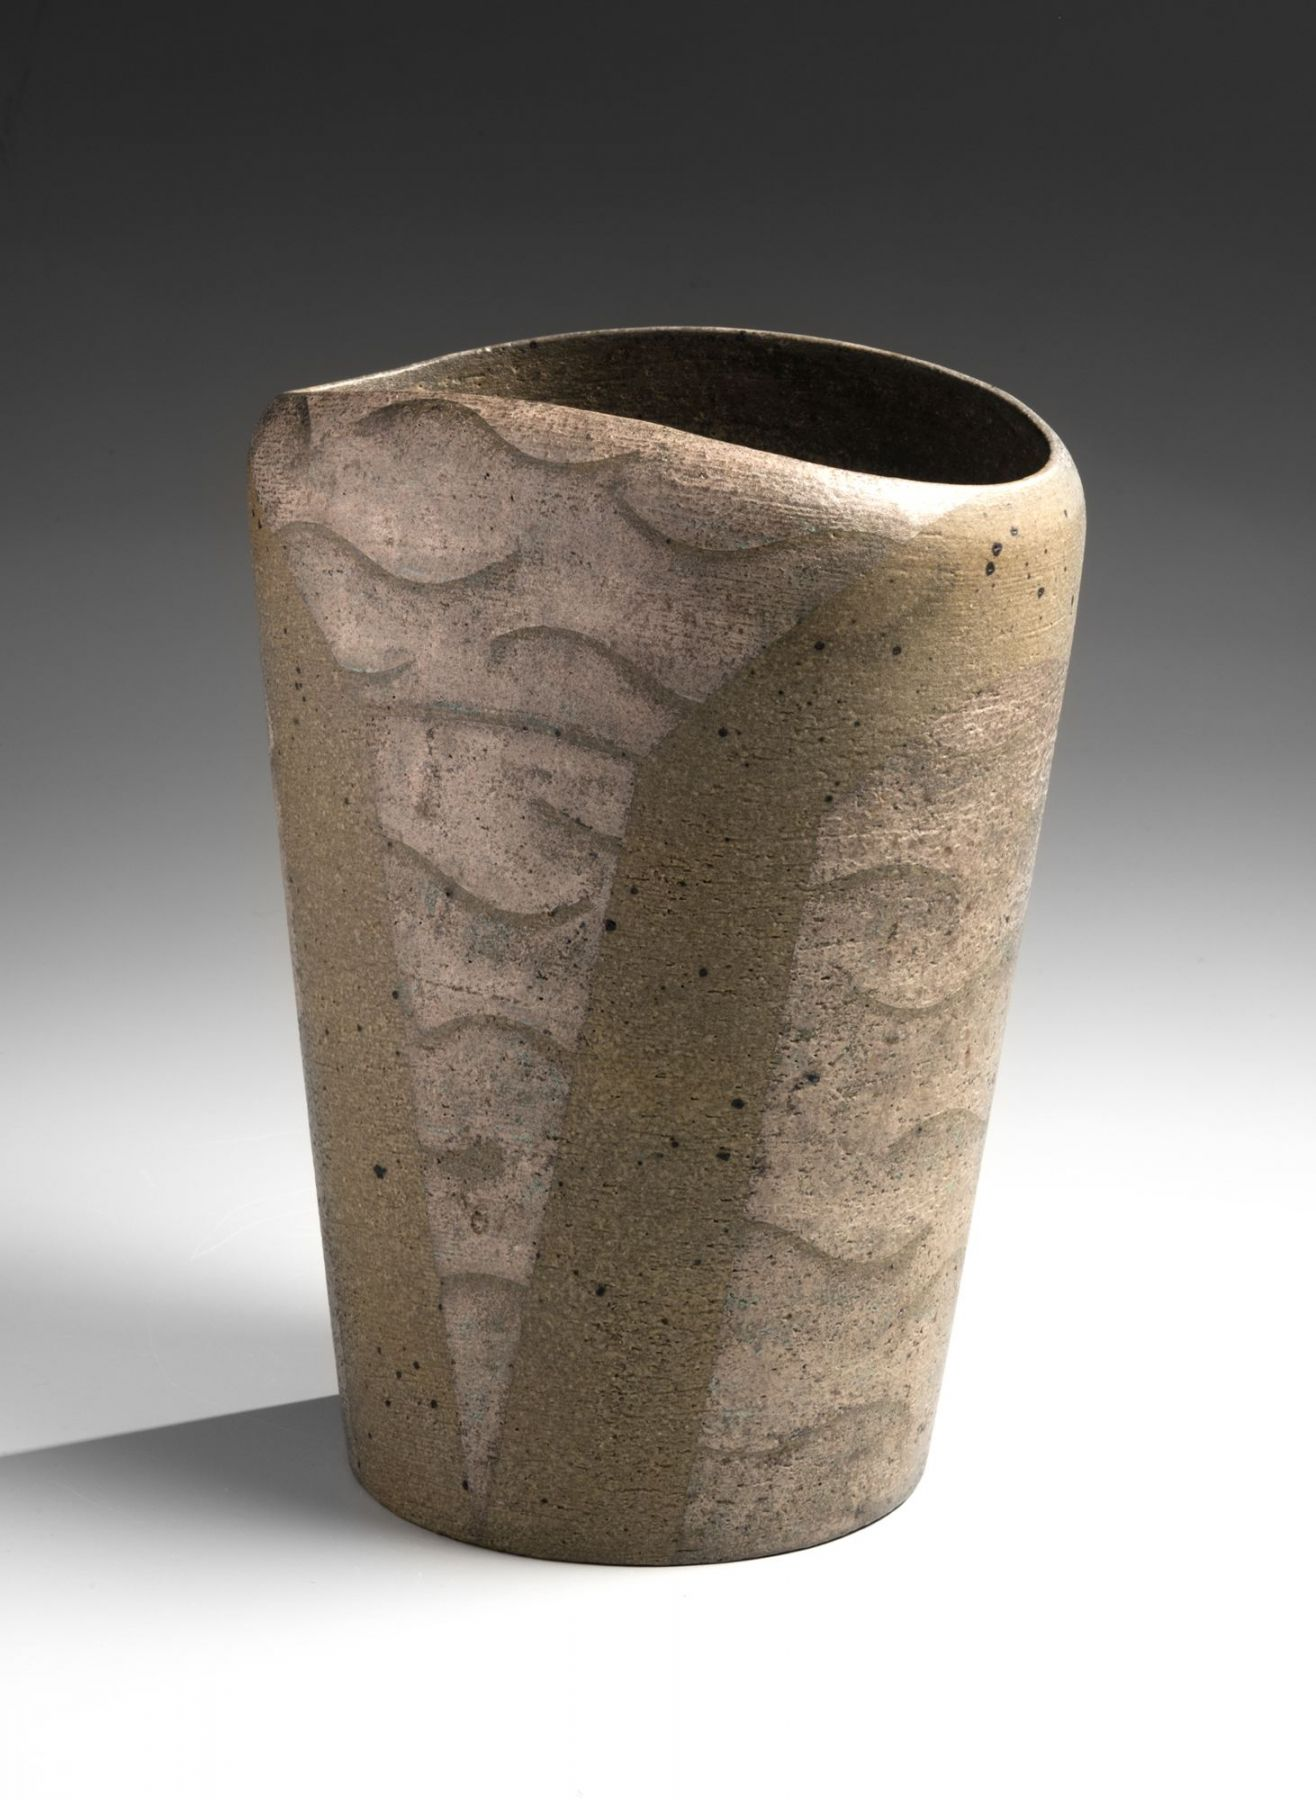 Kuriki Tatsusuke (1943-2013), Conical and rounded vase decorated with abstract patterning in silver and dusty green glaze and dots in black glaze